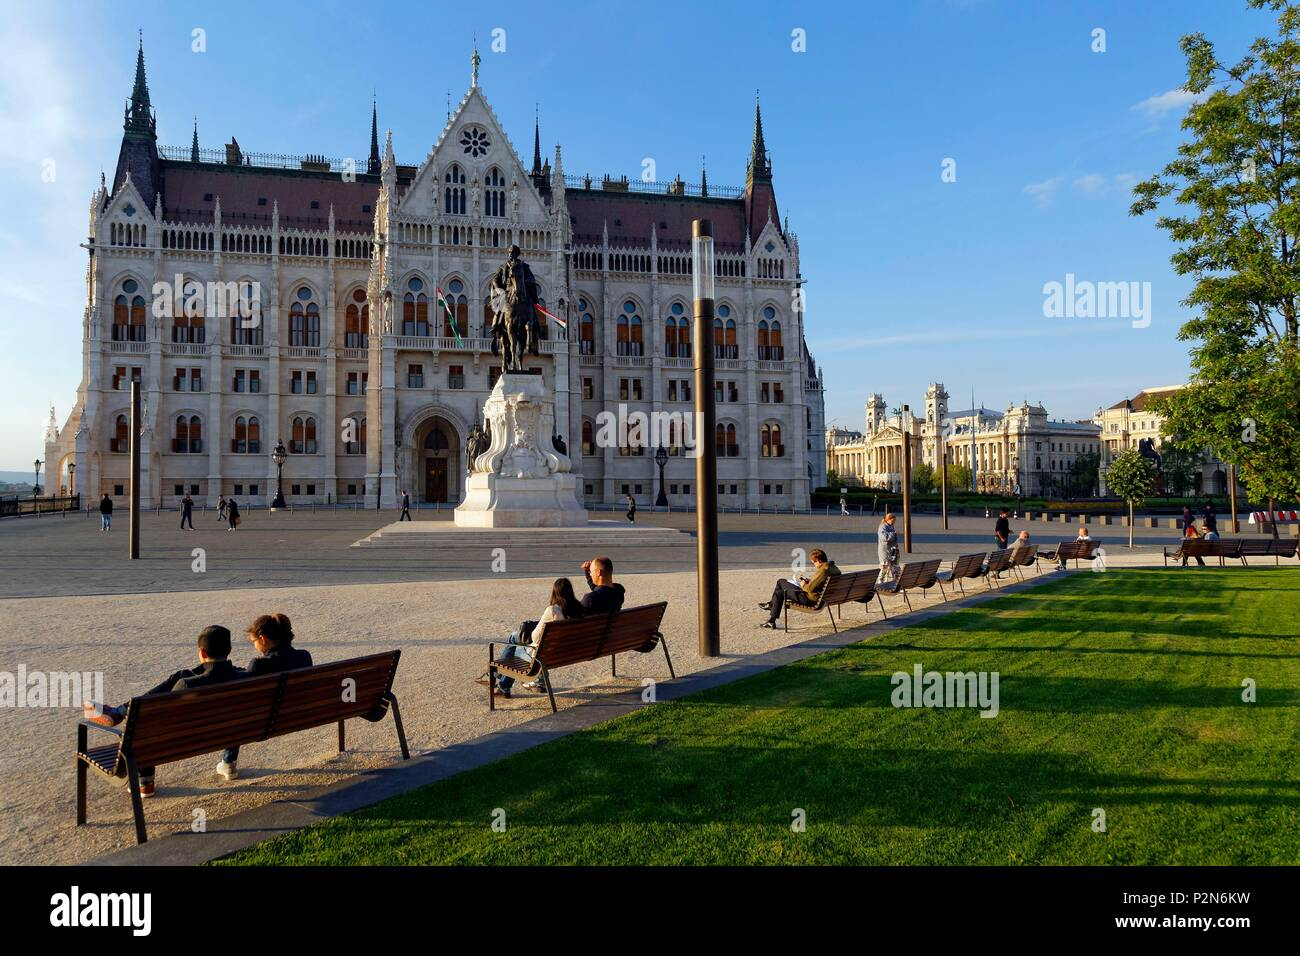 Budapest, Hungary, area classified as World Heritage, equestrian statue of Count Gyula Andrássy near the Hungarian Parliament Building Stock Photo